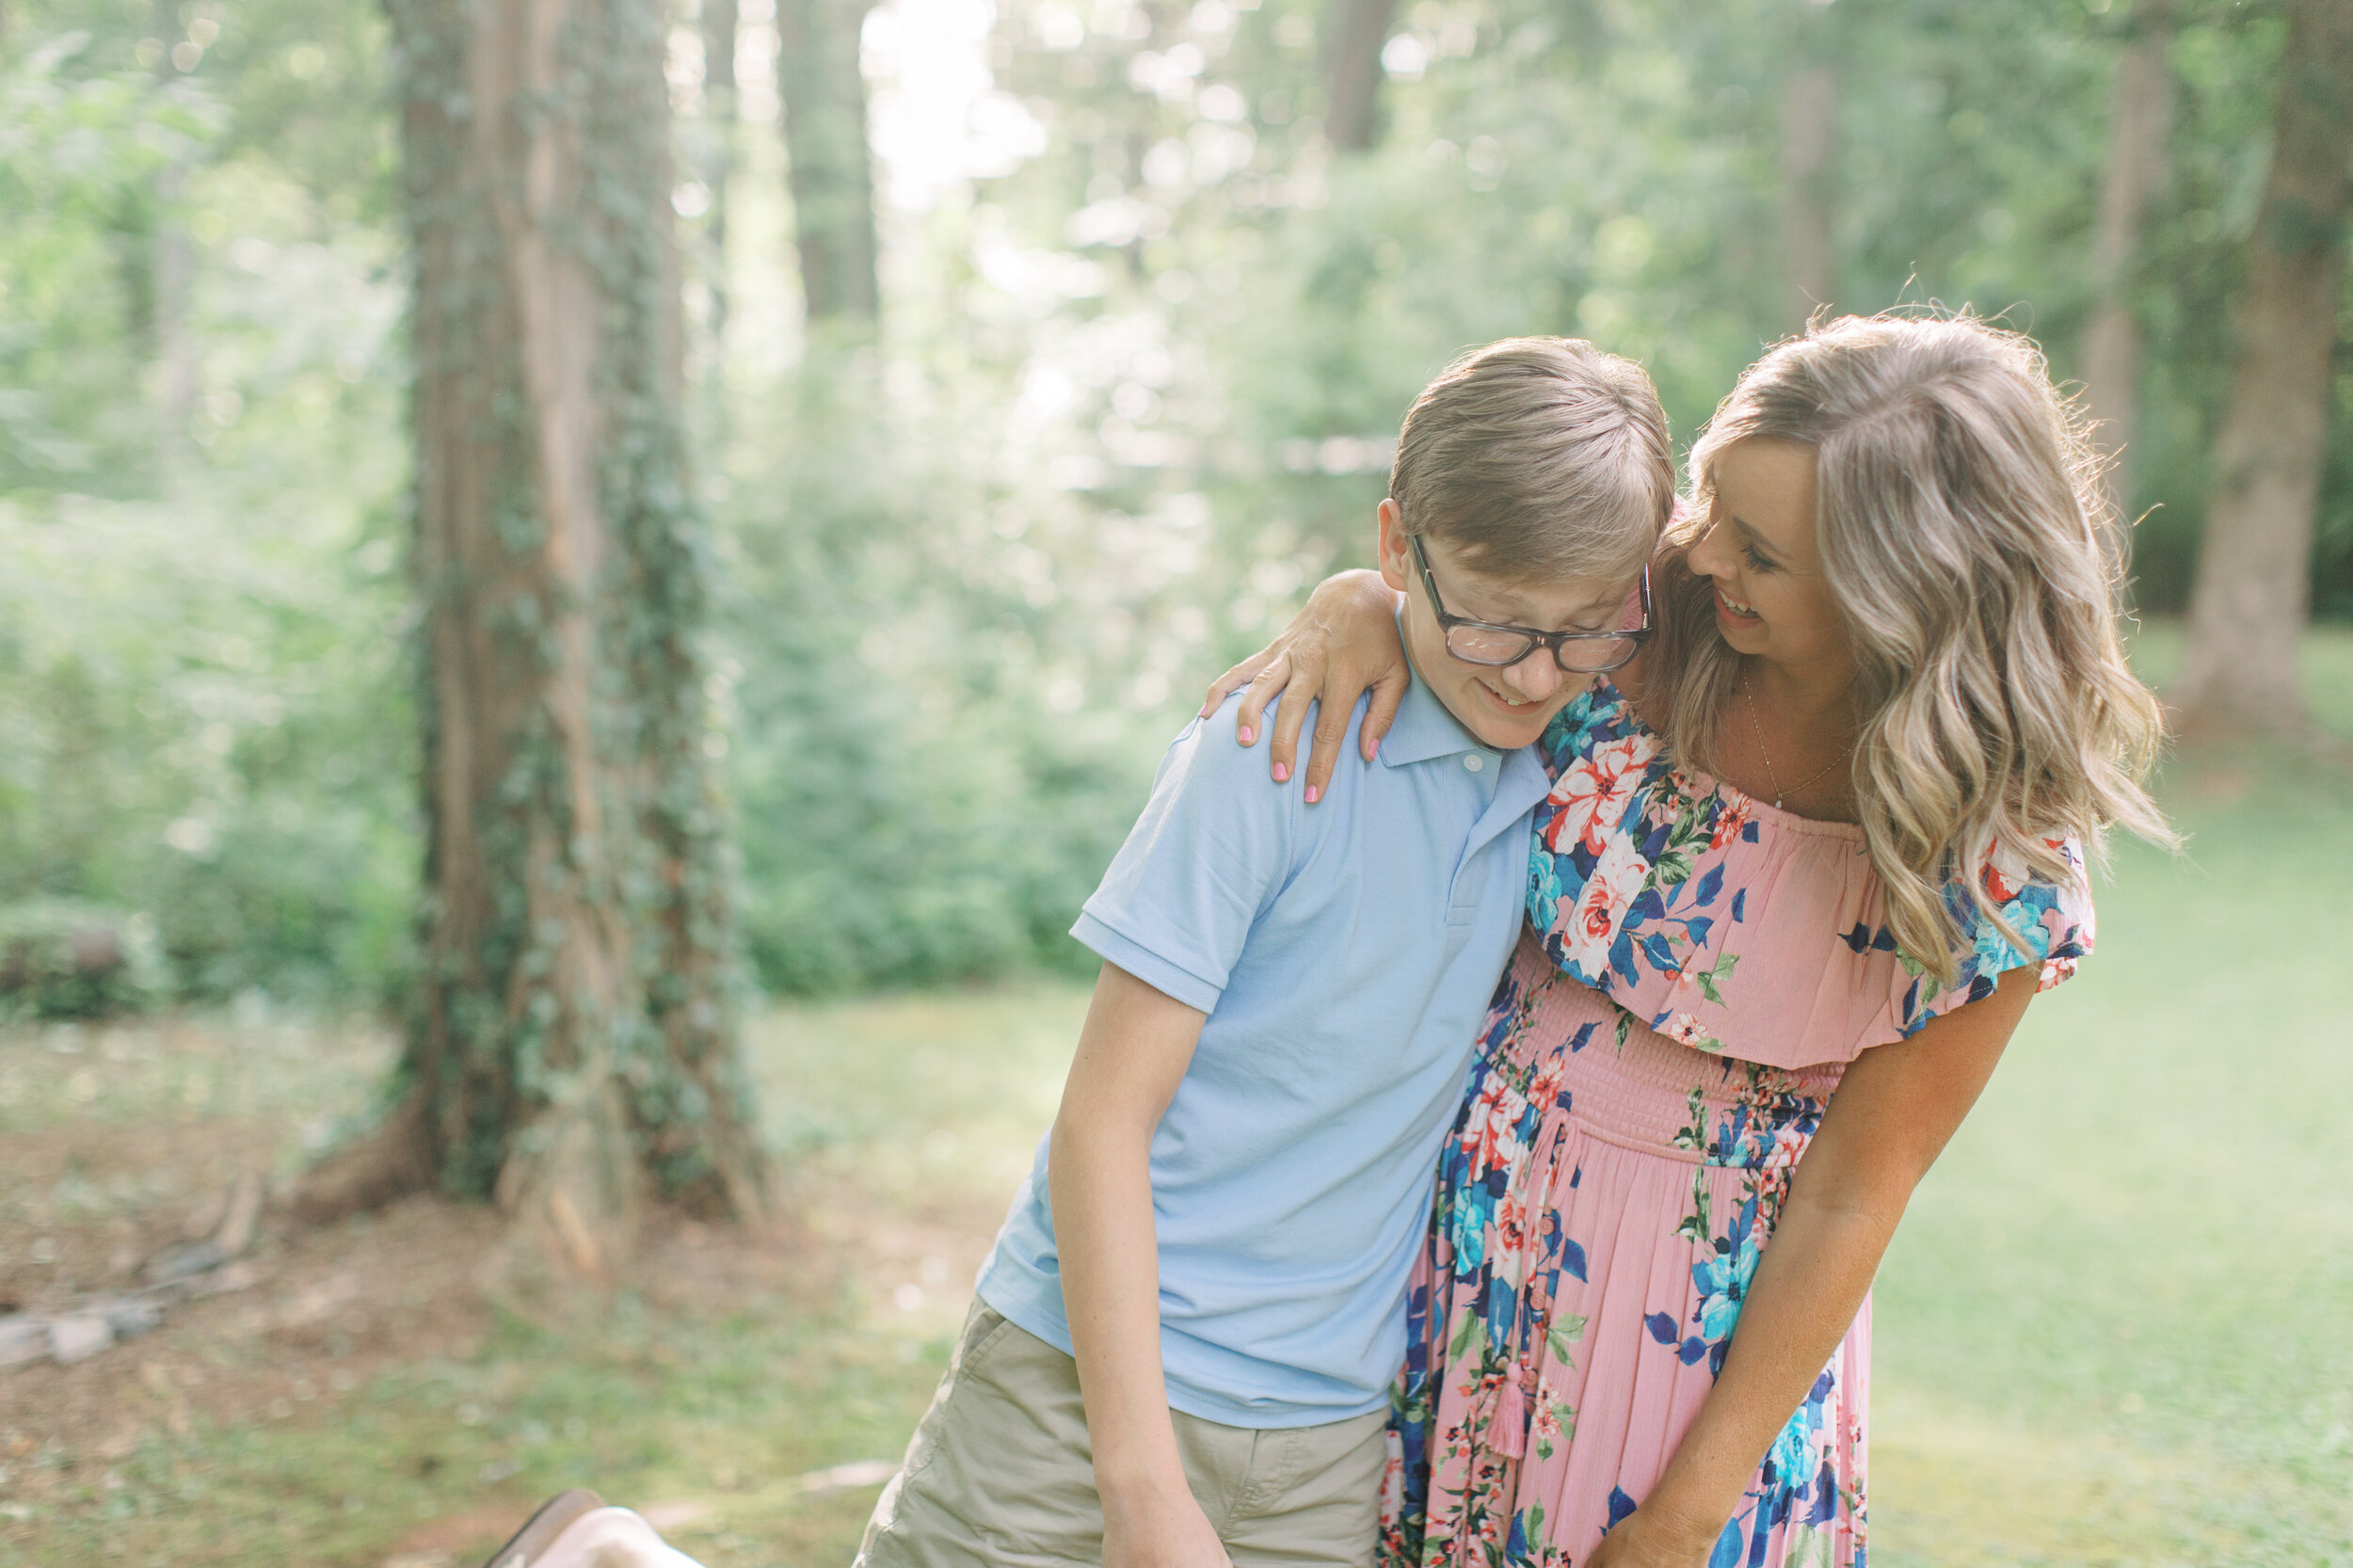 Price_Mini_Abigail_malone_Photography_Knoxville-9.jpg